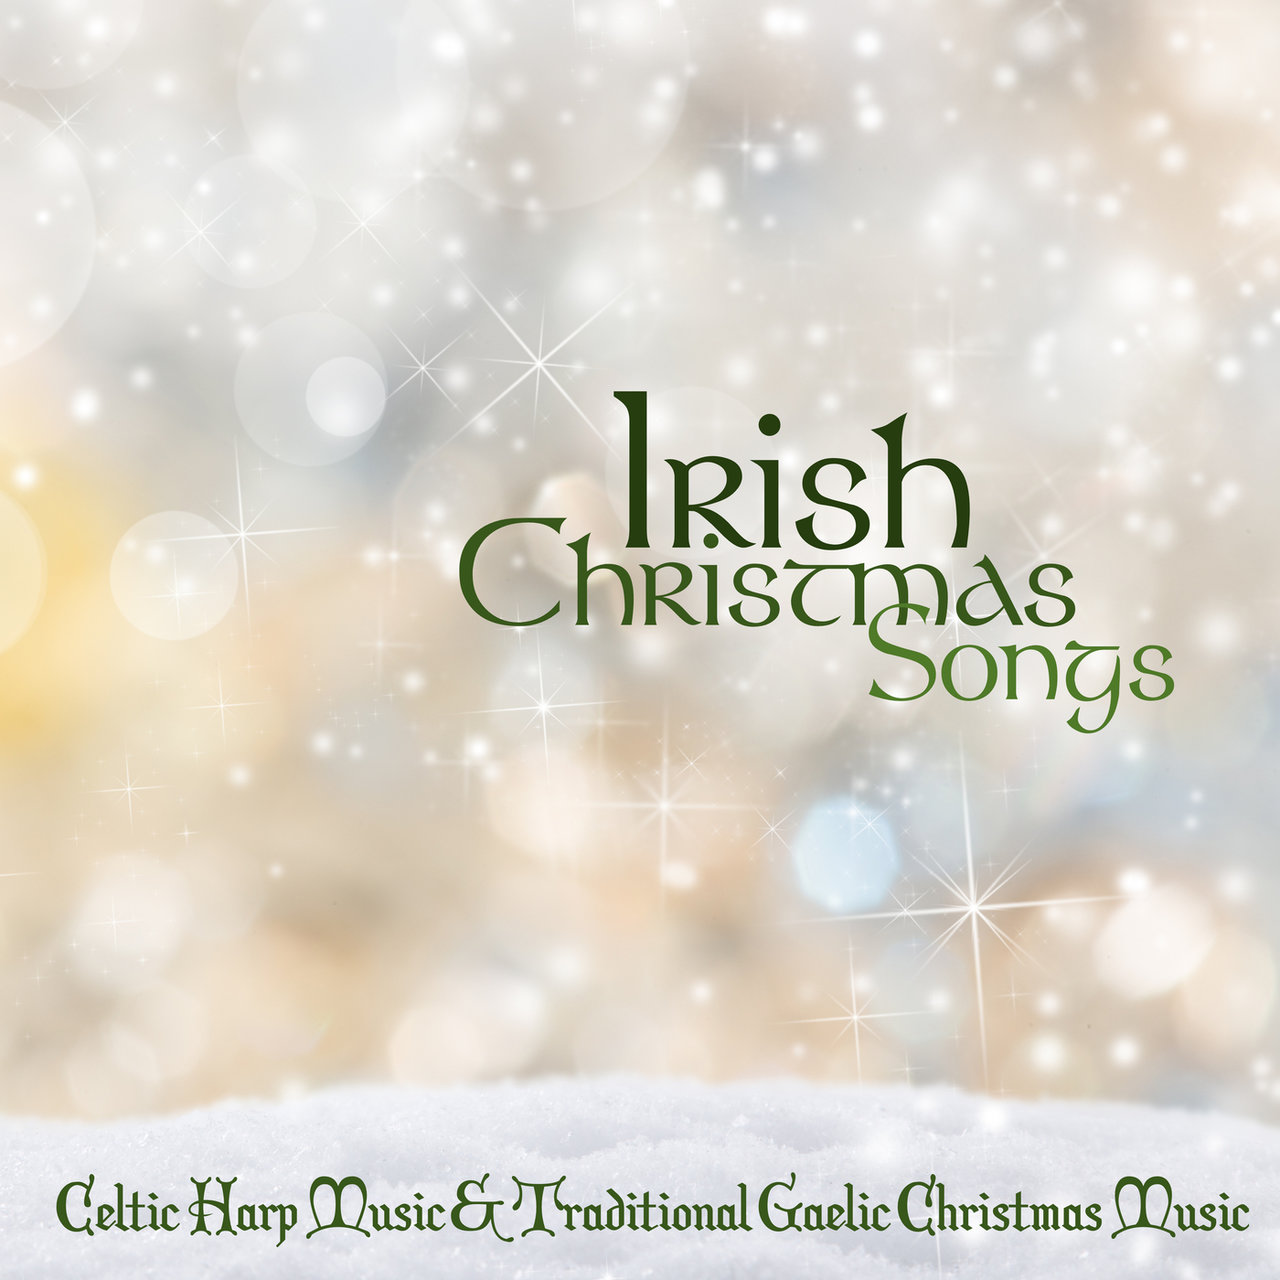 TIDAL: Listen to Irish Christmas Songs - Celtic Harp Music ...